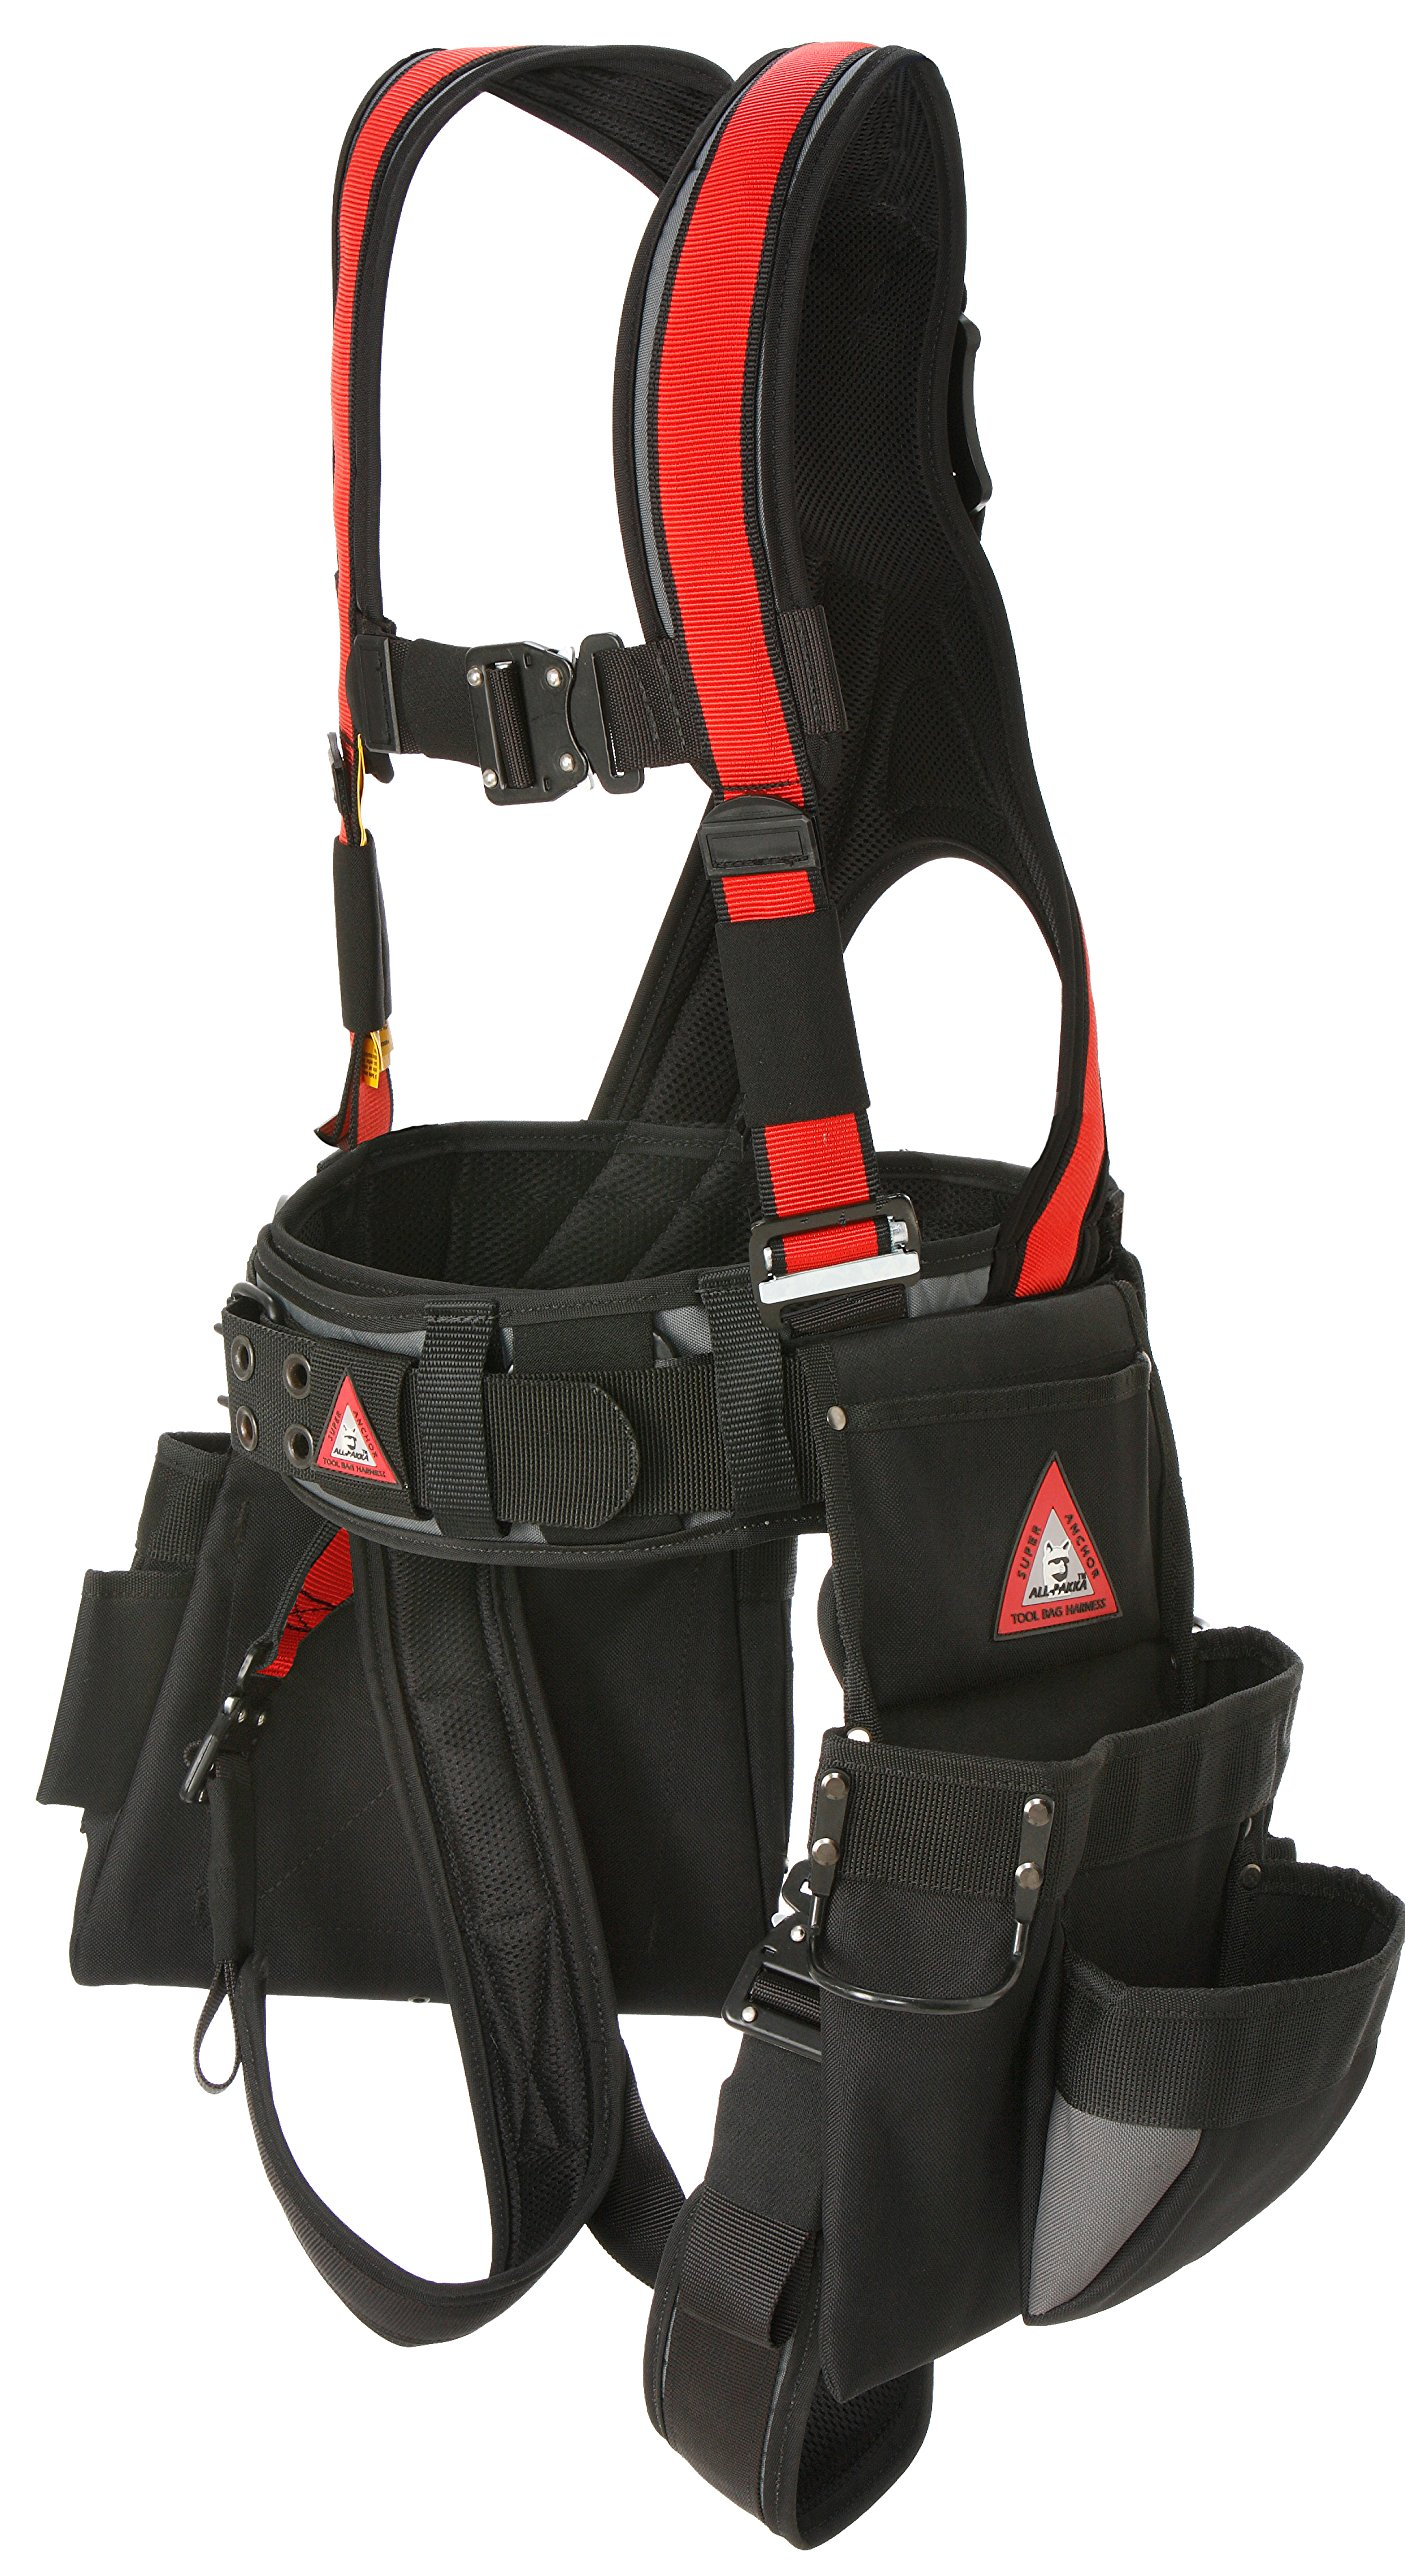 Super Anchor Safety 6151-RL Deluxe Full Body Harness plus All-Pakka Tool Bag Combo, Large, Red